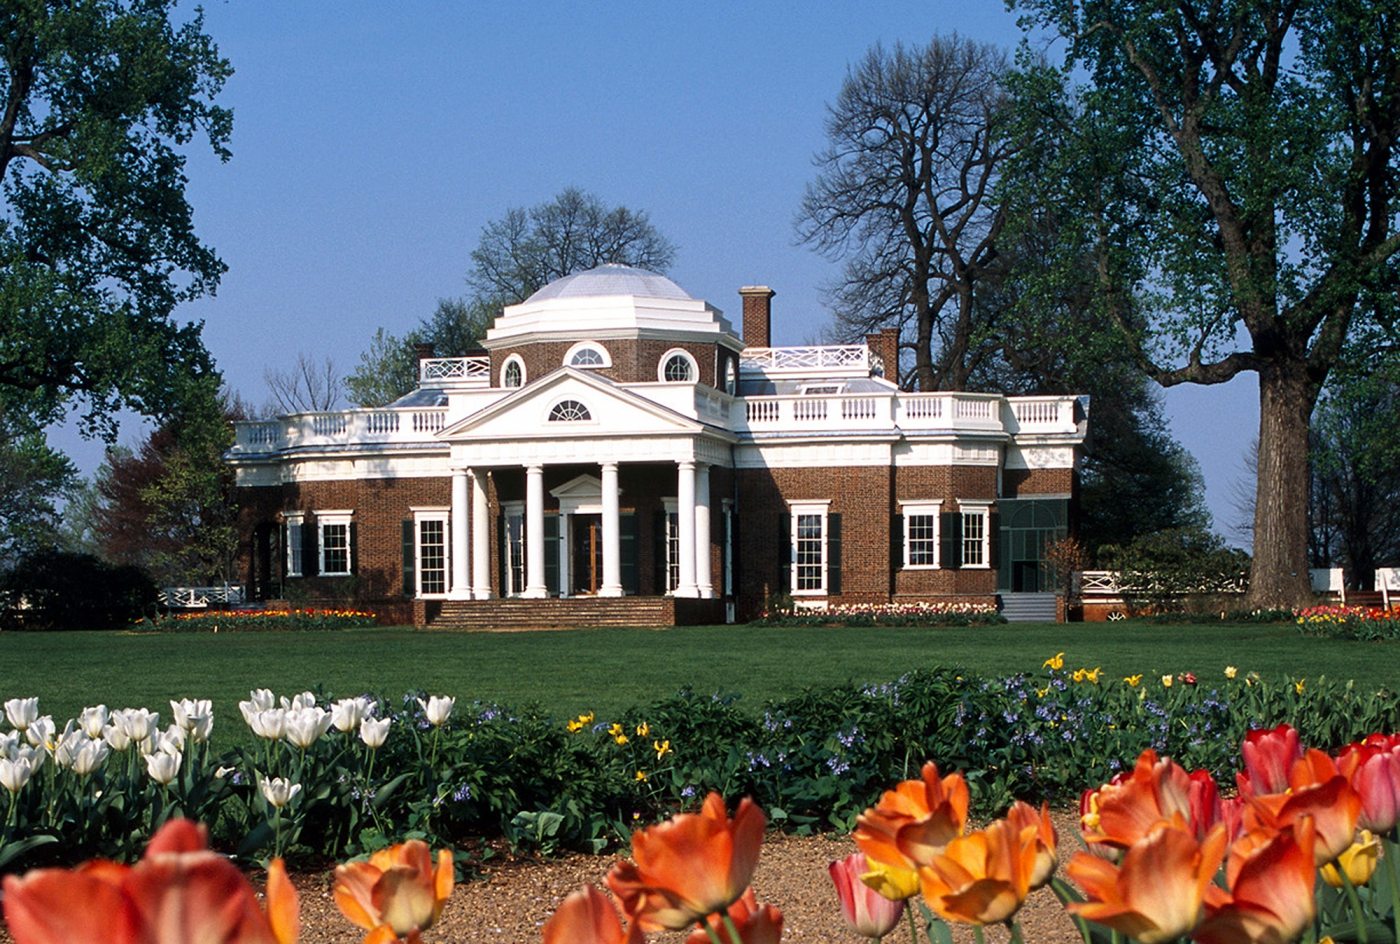 Monticello (KY) United States  city pictures gallery : ... Jefferson, the third president of the United States. ©Stephanie Gross